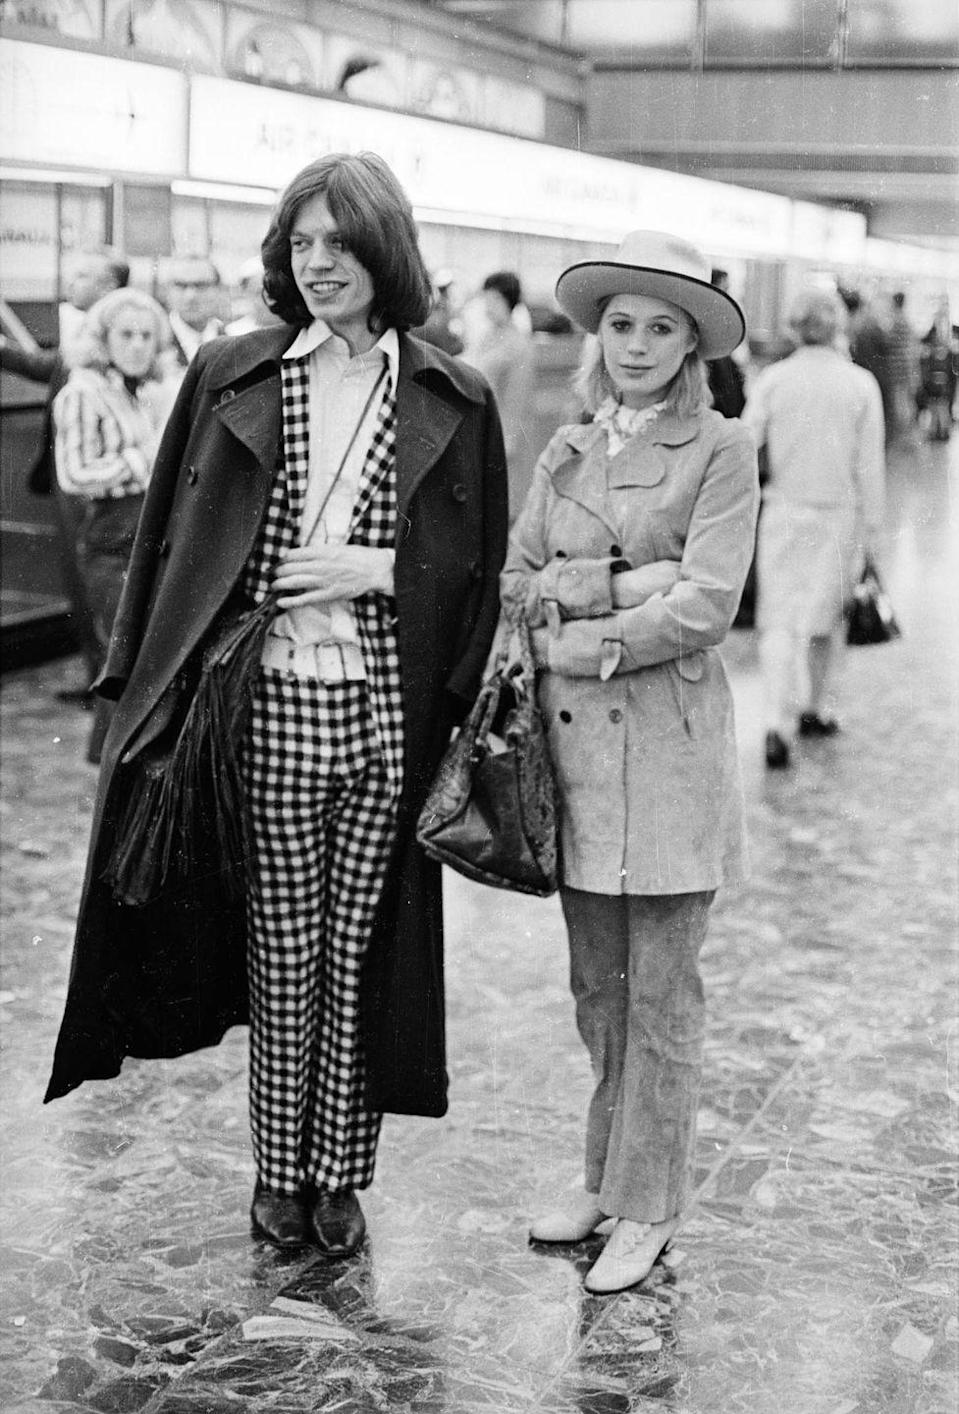 <p>Marianne Faithfull and Mick Jagger at London Airport in 1969.</p>